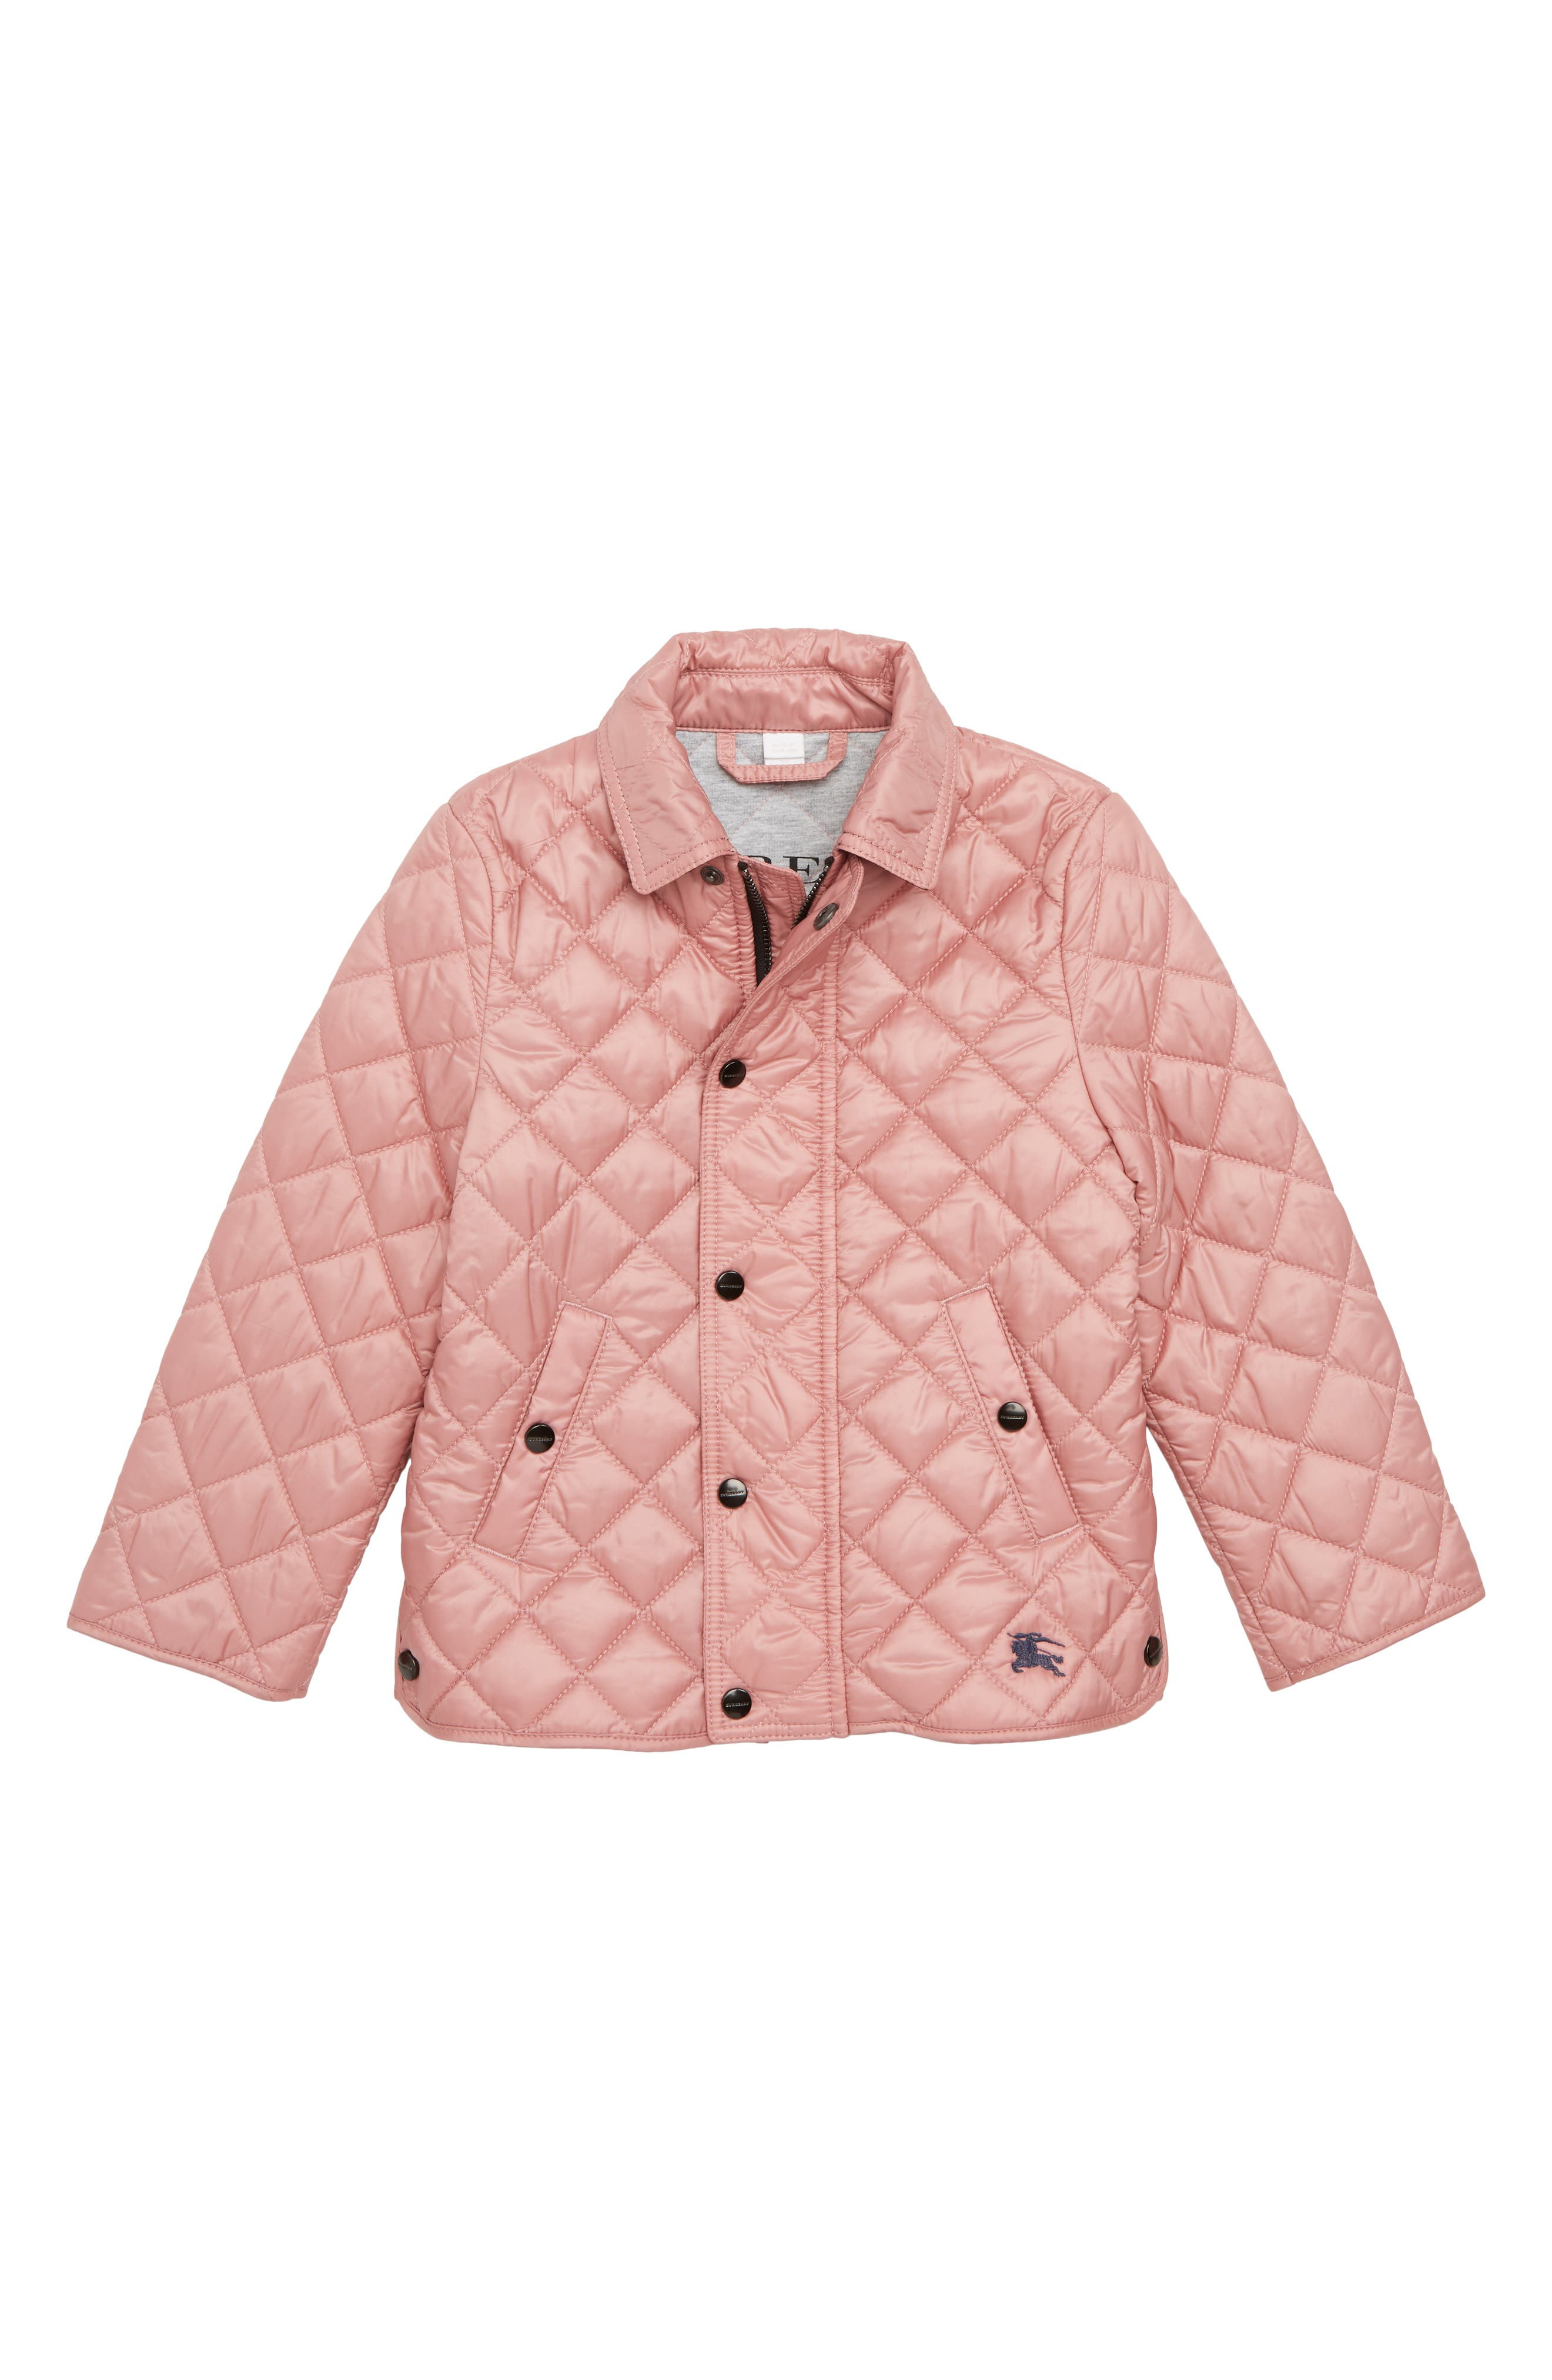 BURBERRY, Diamond Quilted Jacket, Main thumbnail 1, color, PALE ASH ROSE